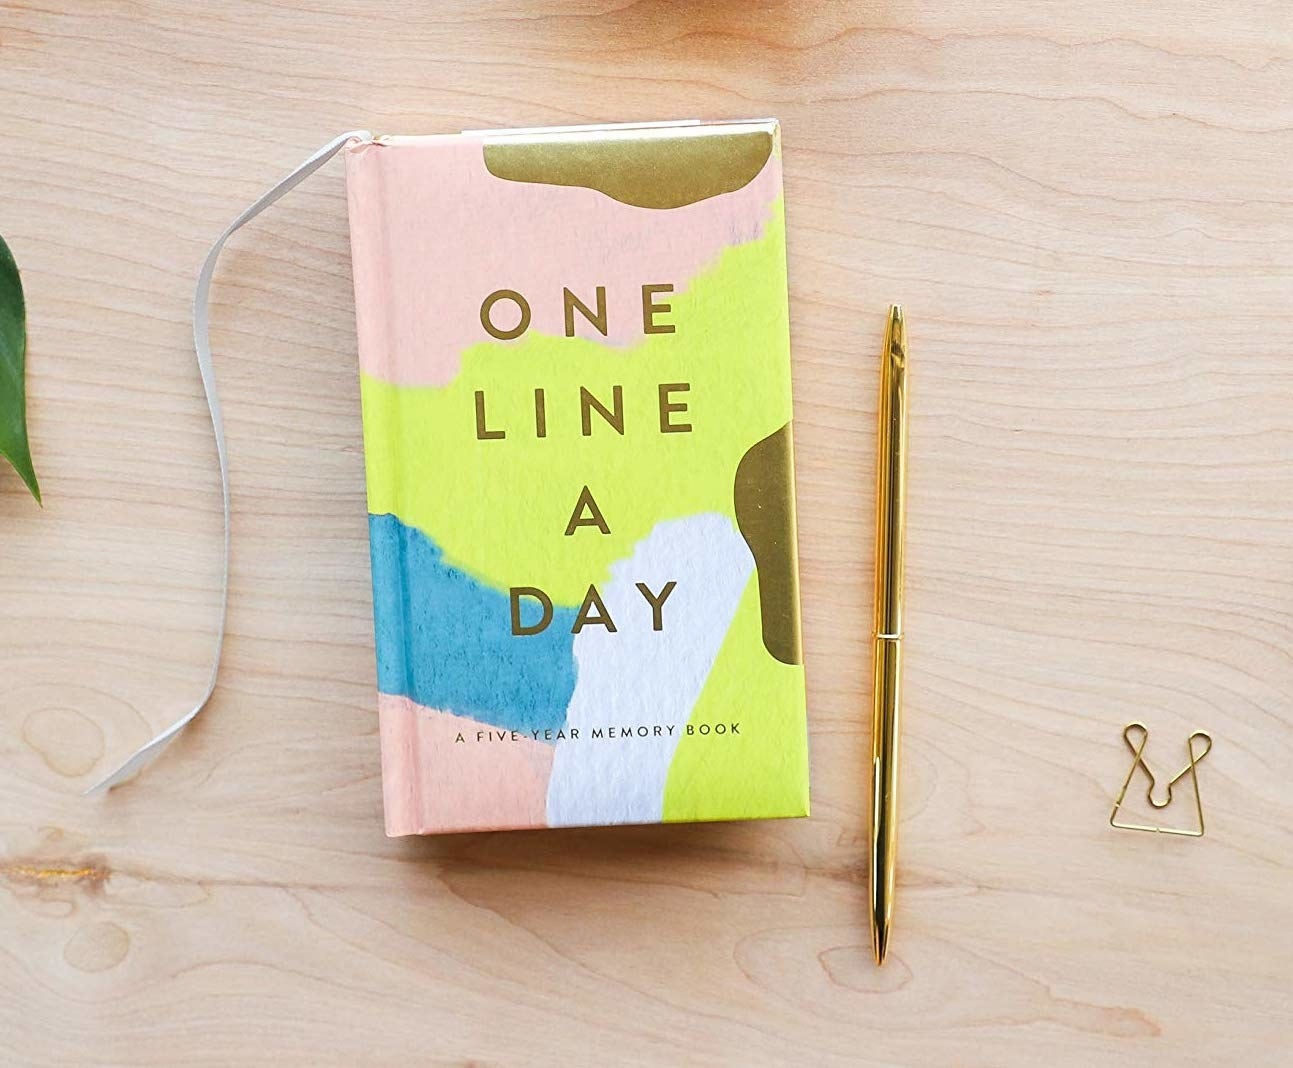 the one line a day journal with a pink, yellow, blue, and gold painted cover